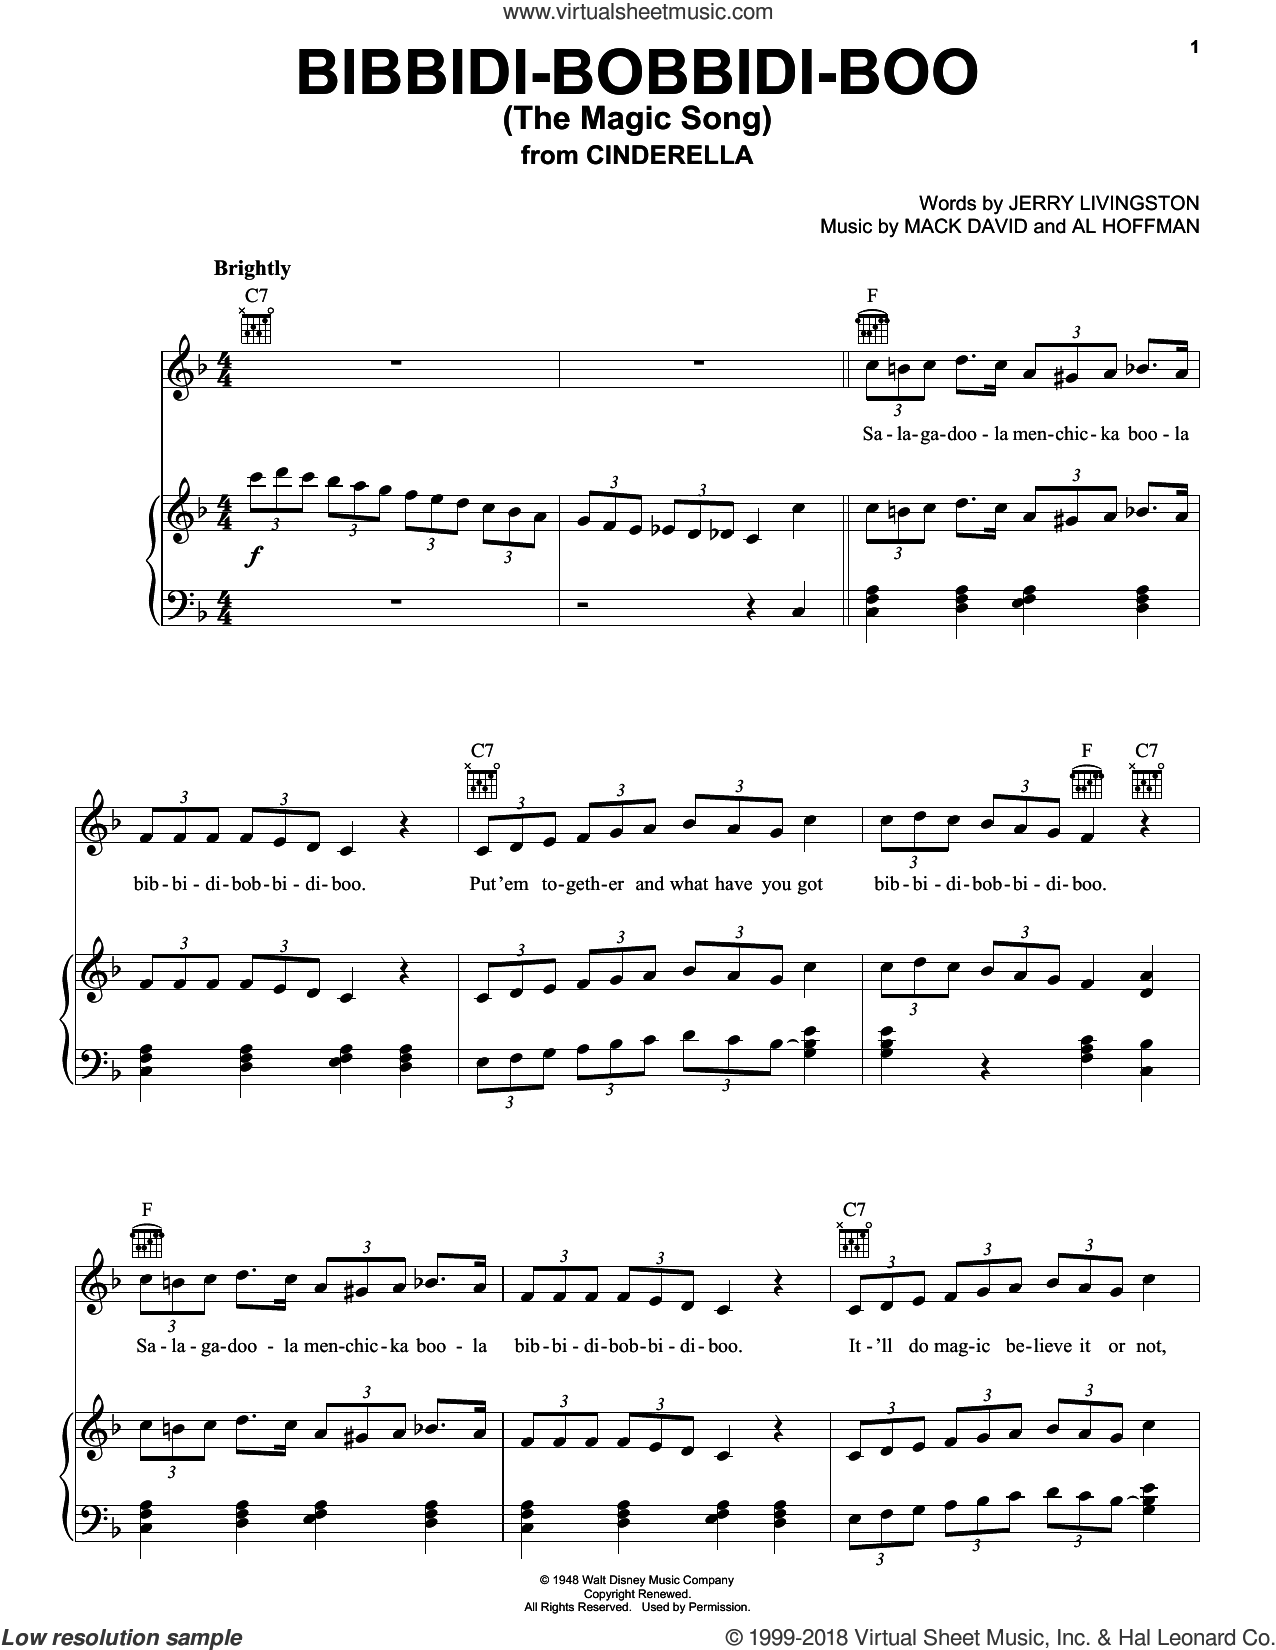 Bibbidi-Bobbidi-Boo (The Magic Song) sheet music for voice, piano or guitar by Louis Armstrong, Bobby McFerrin, Al Hoffman, Jerry Livingston and Mack David, intermediate skill level